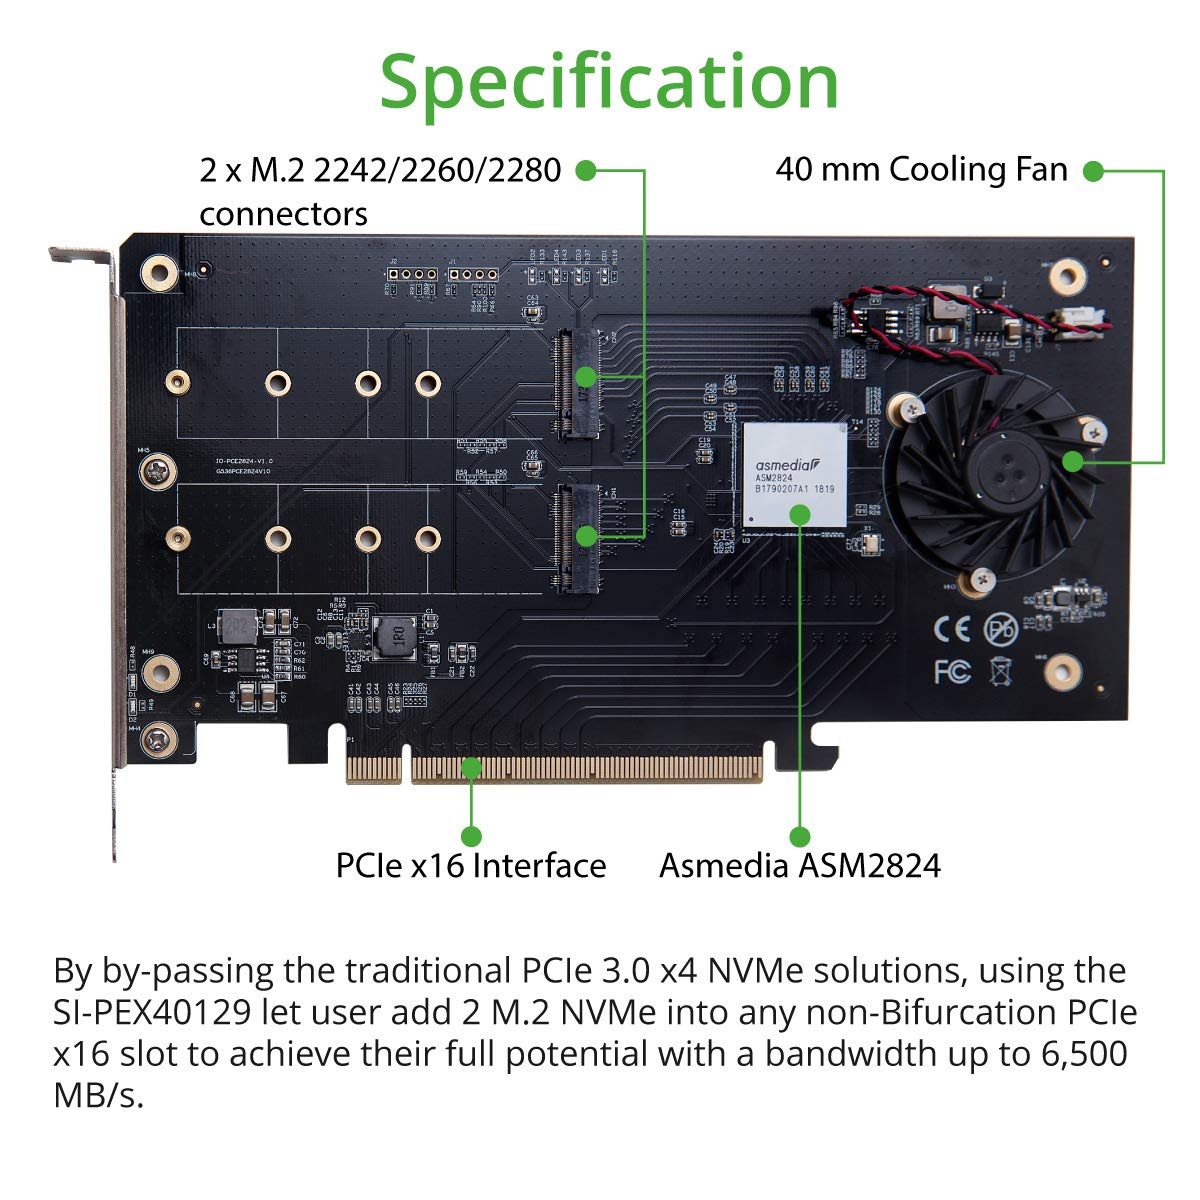 I/O CREST SI-PEX40129 Dual M.2 NVMe Ports to PCIe 3.0 x16 Bifurcation Riser Controller - Support Non-Bifurcation Motherboard by I/O CREST (Image #4)